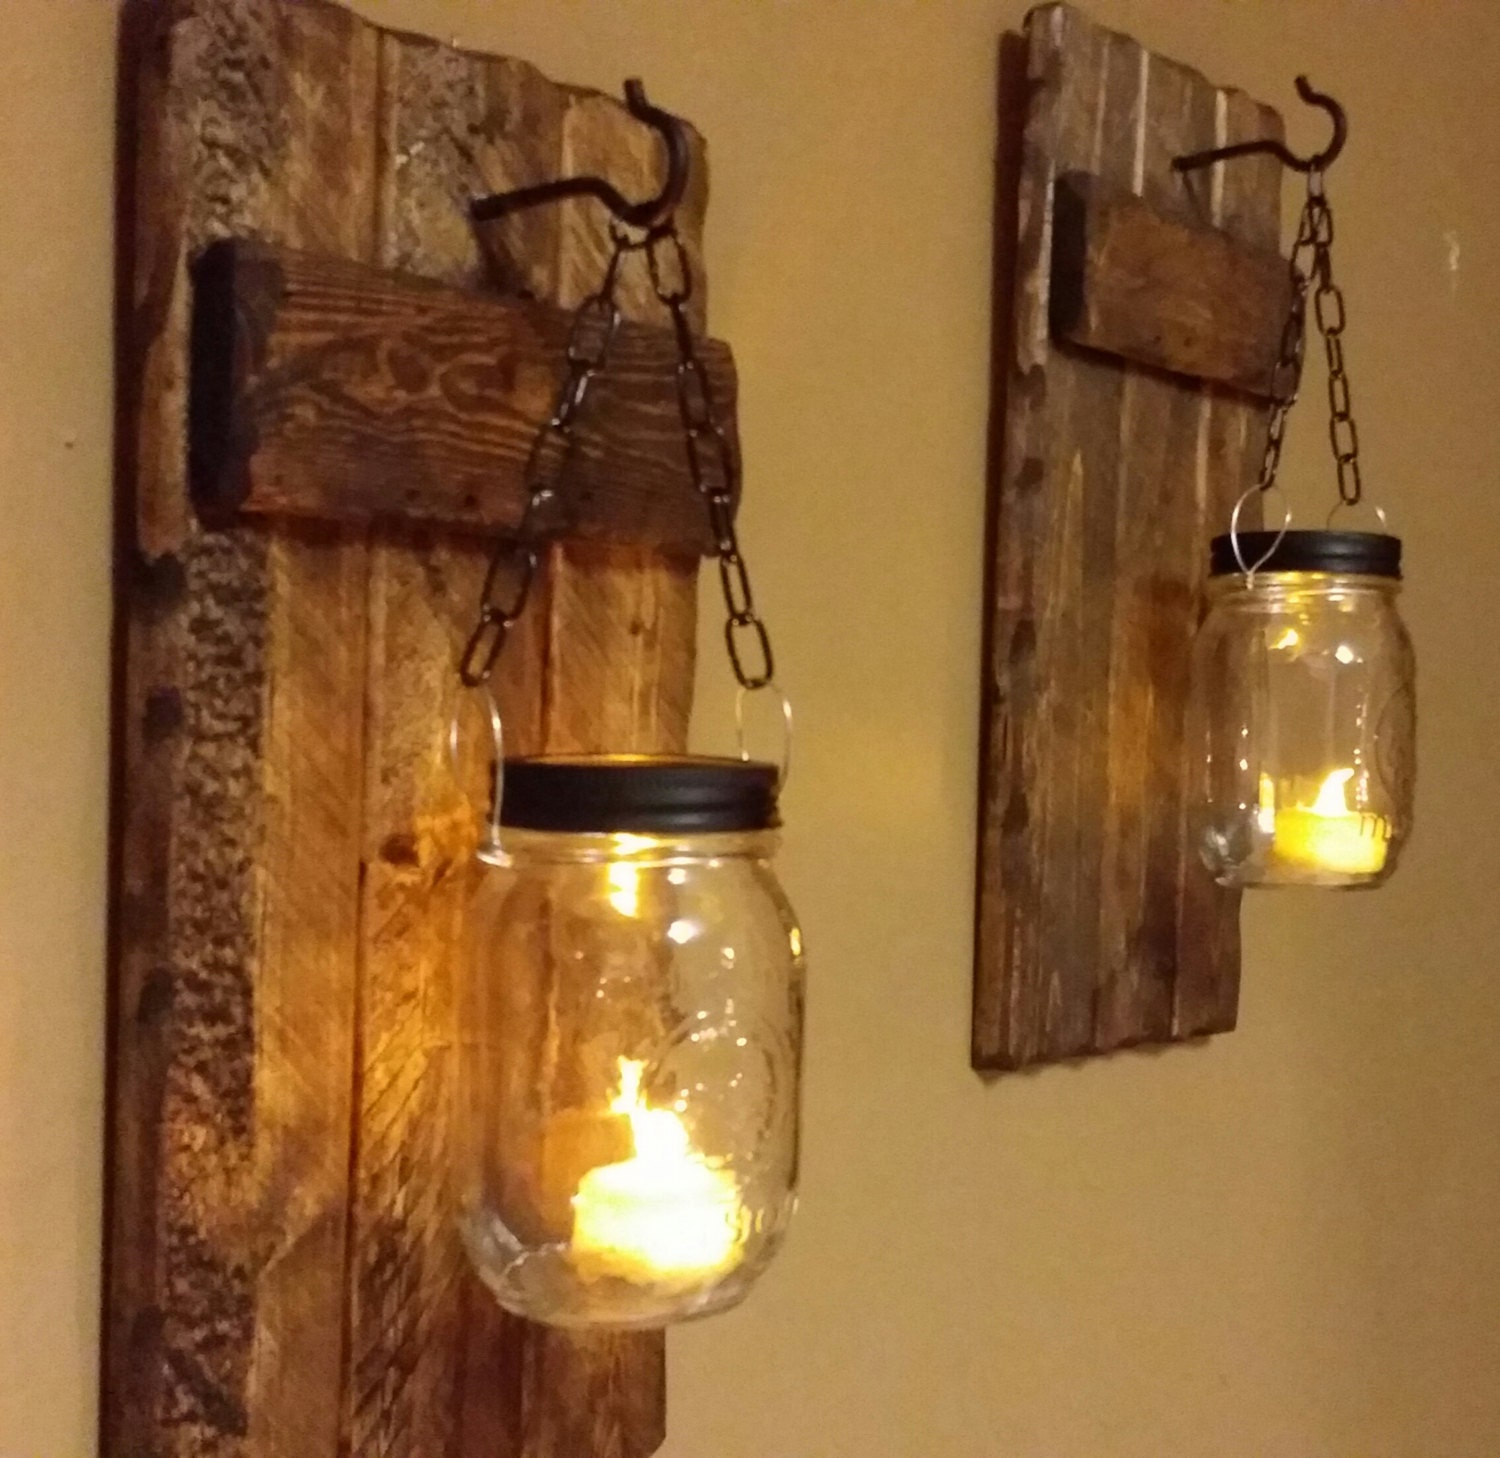 Wood Sconce Rustic Home Decor Rustic candle holder Rustic ...